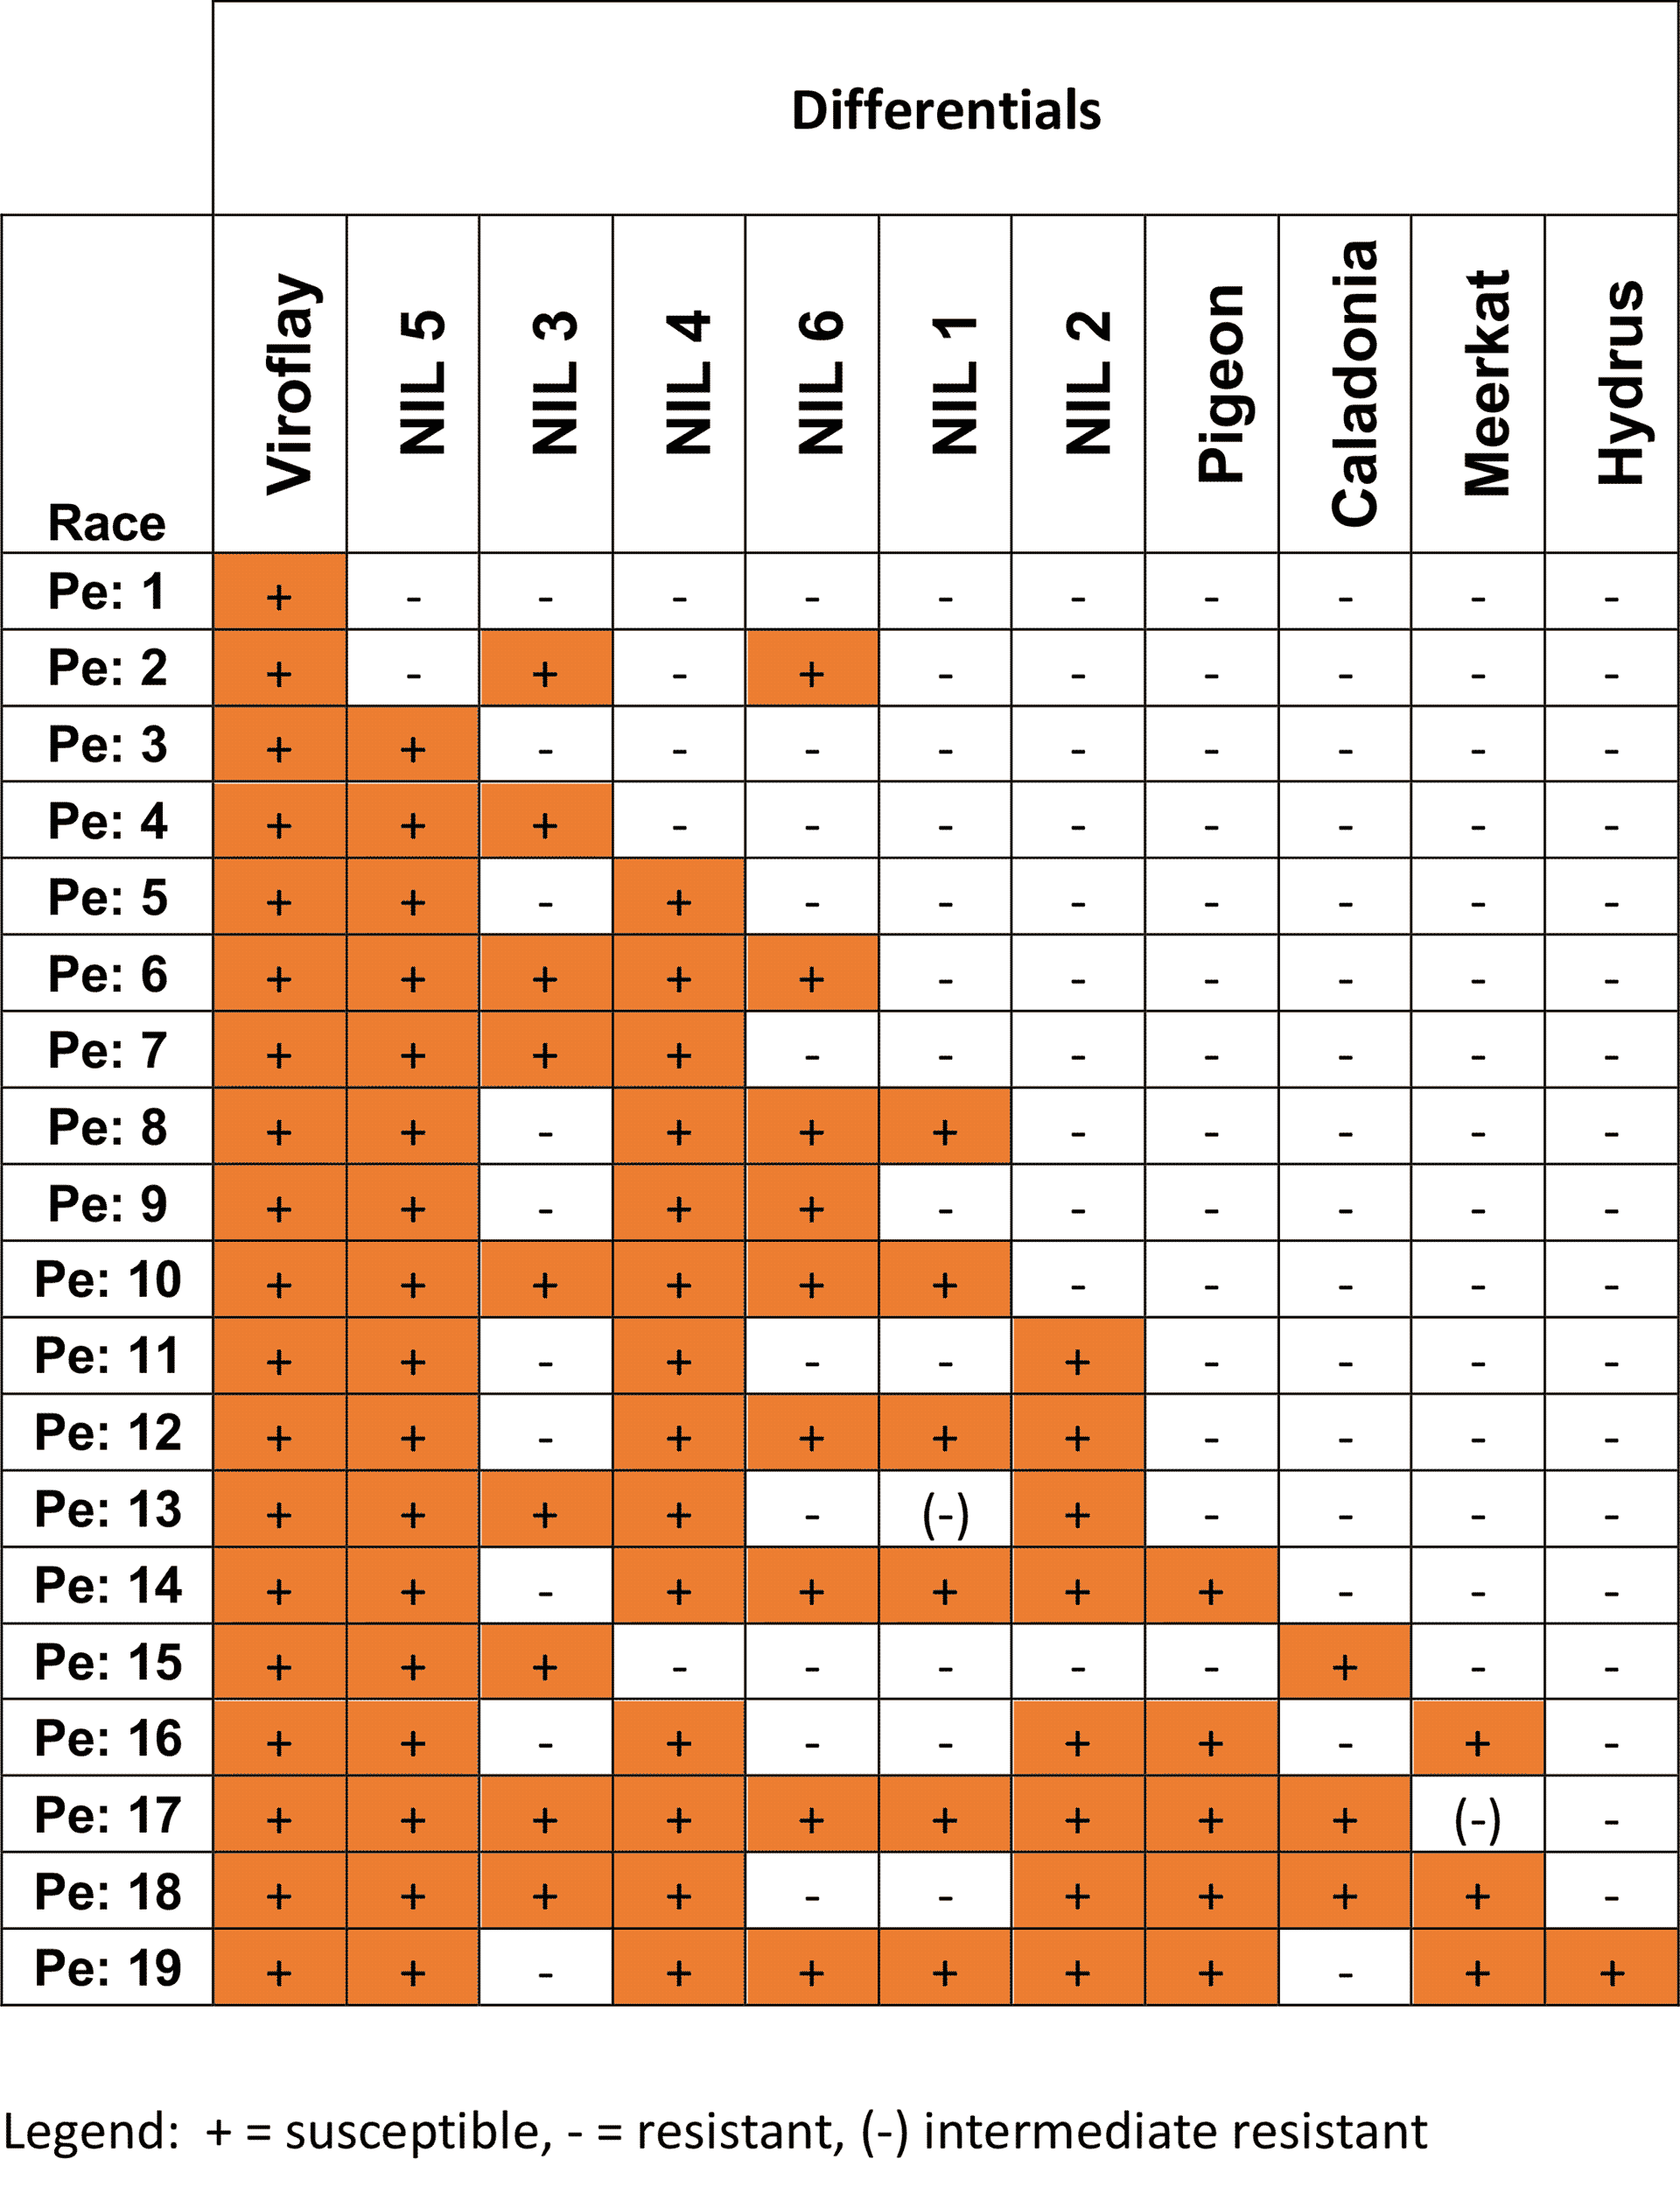 Table with disease resistance reactions of spinach downy mildew races on IWGP differentials